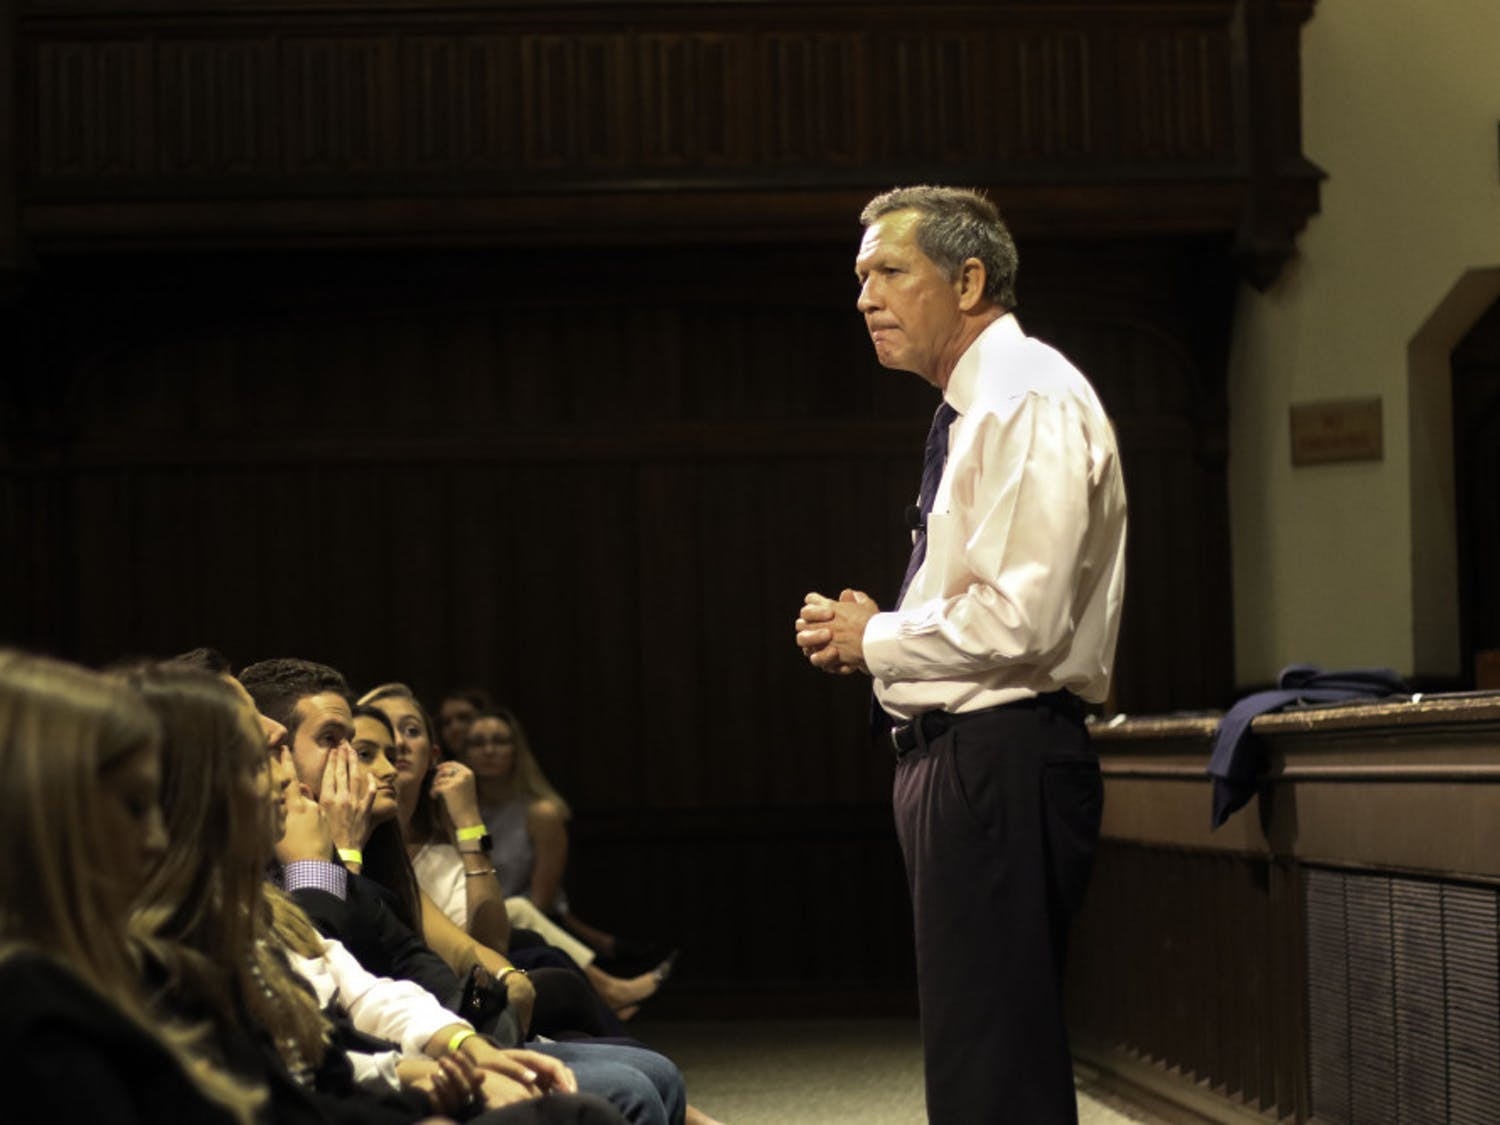 """John Kasich, former governor of Ohio and presidential candidate, speaks to around 800 people Wednesday in the University Auditorium at UF. Kasich spoke about lessons that he had learned throughout his life and encouraged students in the audience to try and impact the world in any way they can. """"Search for possibilities,"""" he said. """"Don't close your minds to what you can do."""" After the speech, he took questions from the audience."""